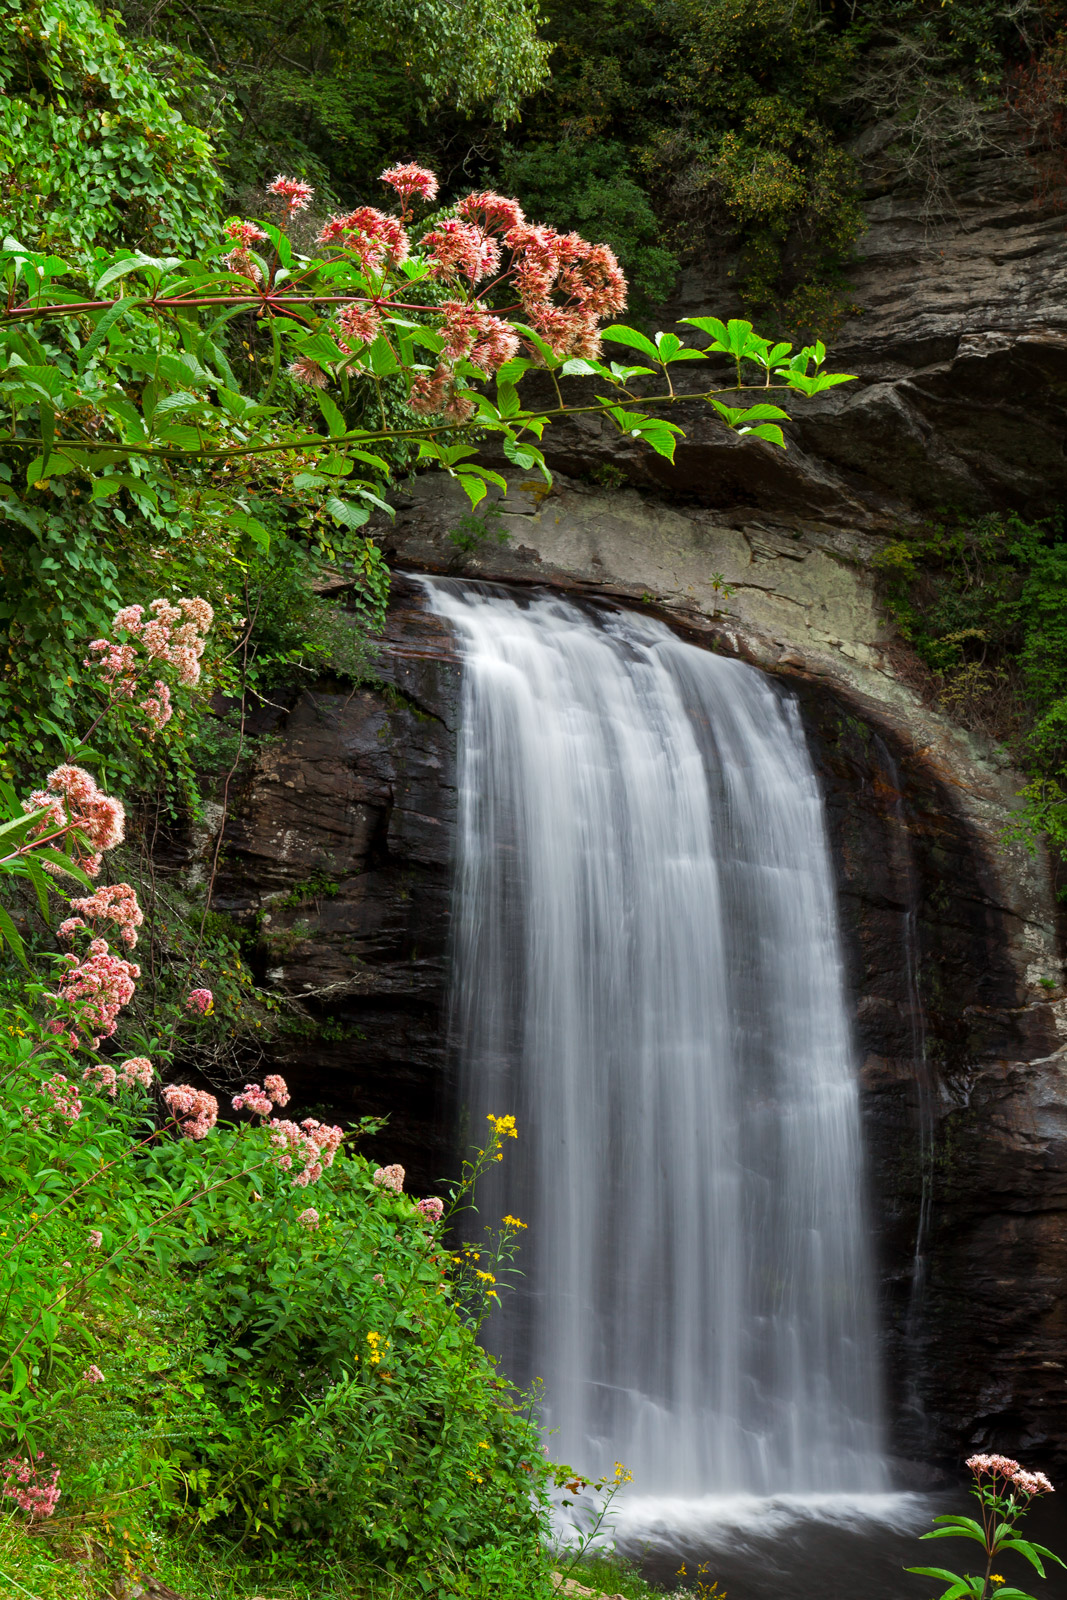 North Carolina, Looking Glass, Falls, Waterfall. Spring, Flowers, limited edition, photograph, fine art, landscape, photo